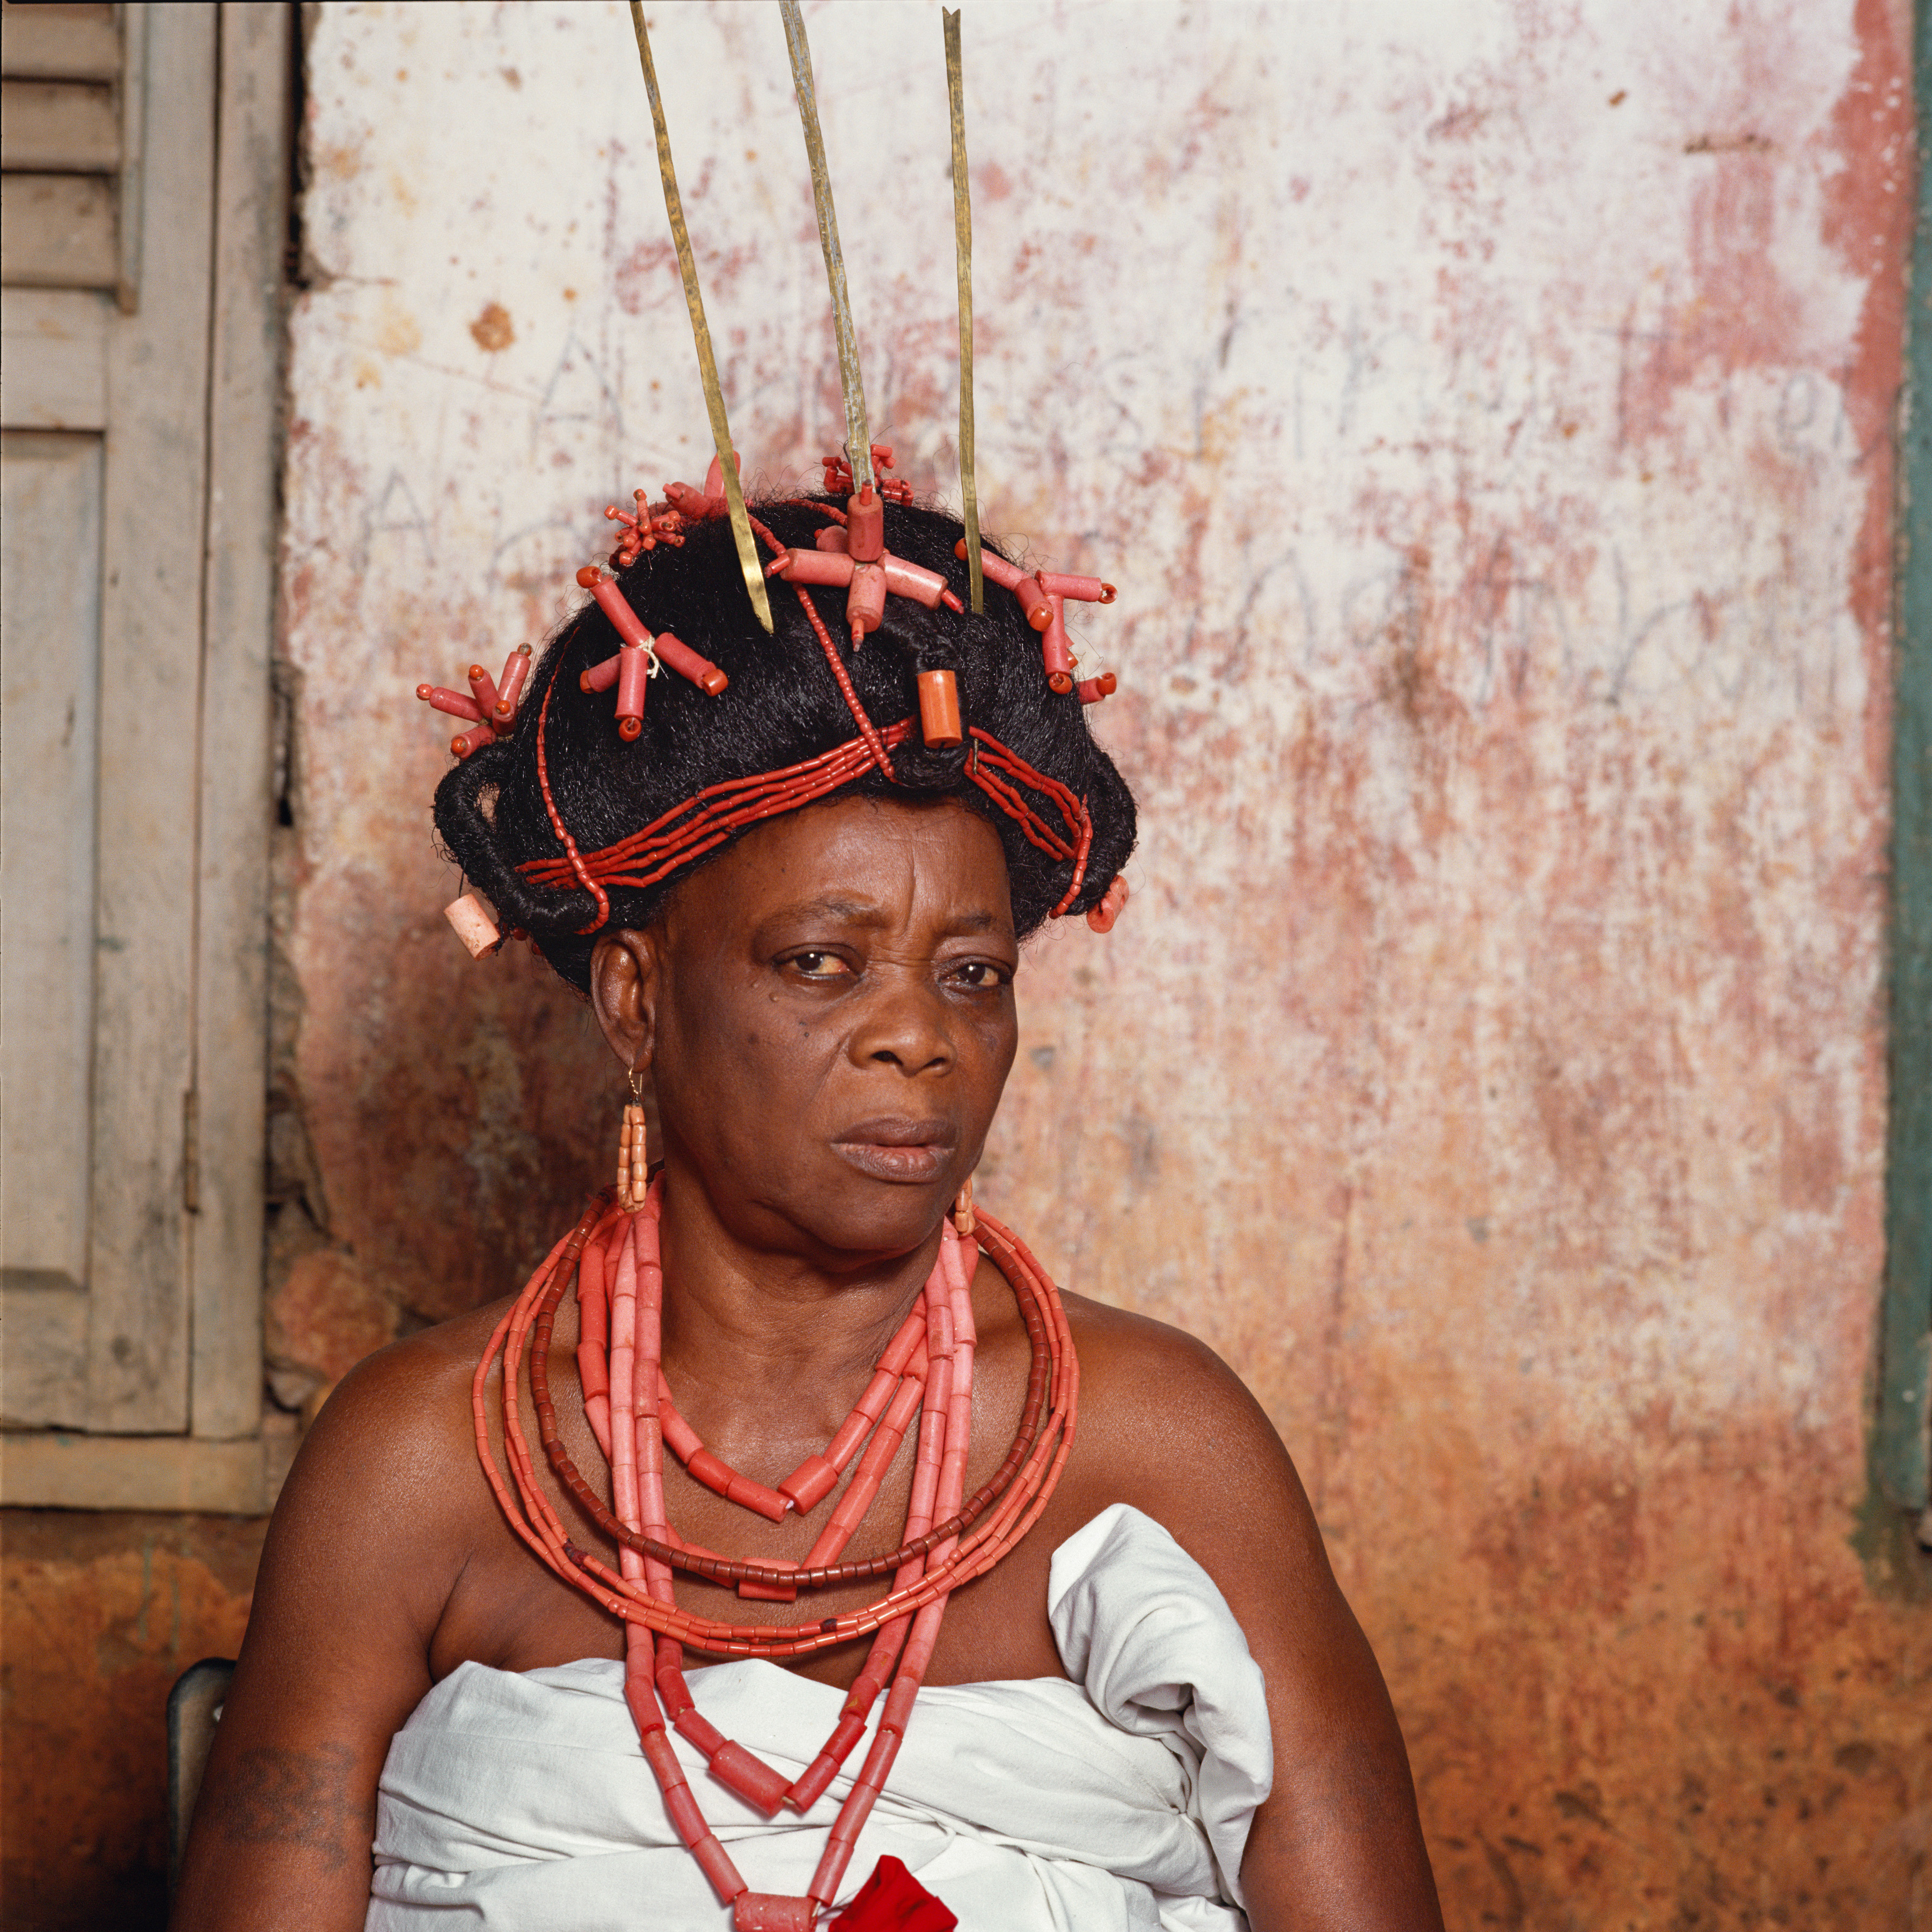 THEATER OF BELIEF: Kings, Chiefs, and Women of Power, Photographs by Phyllis Galembo